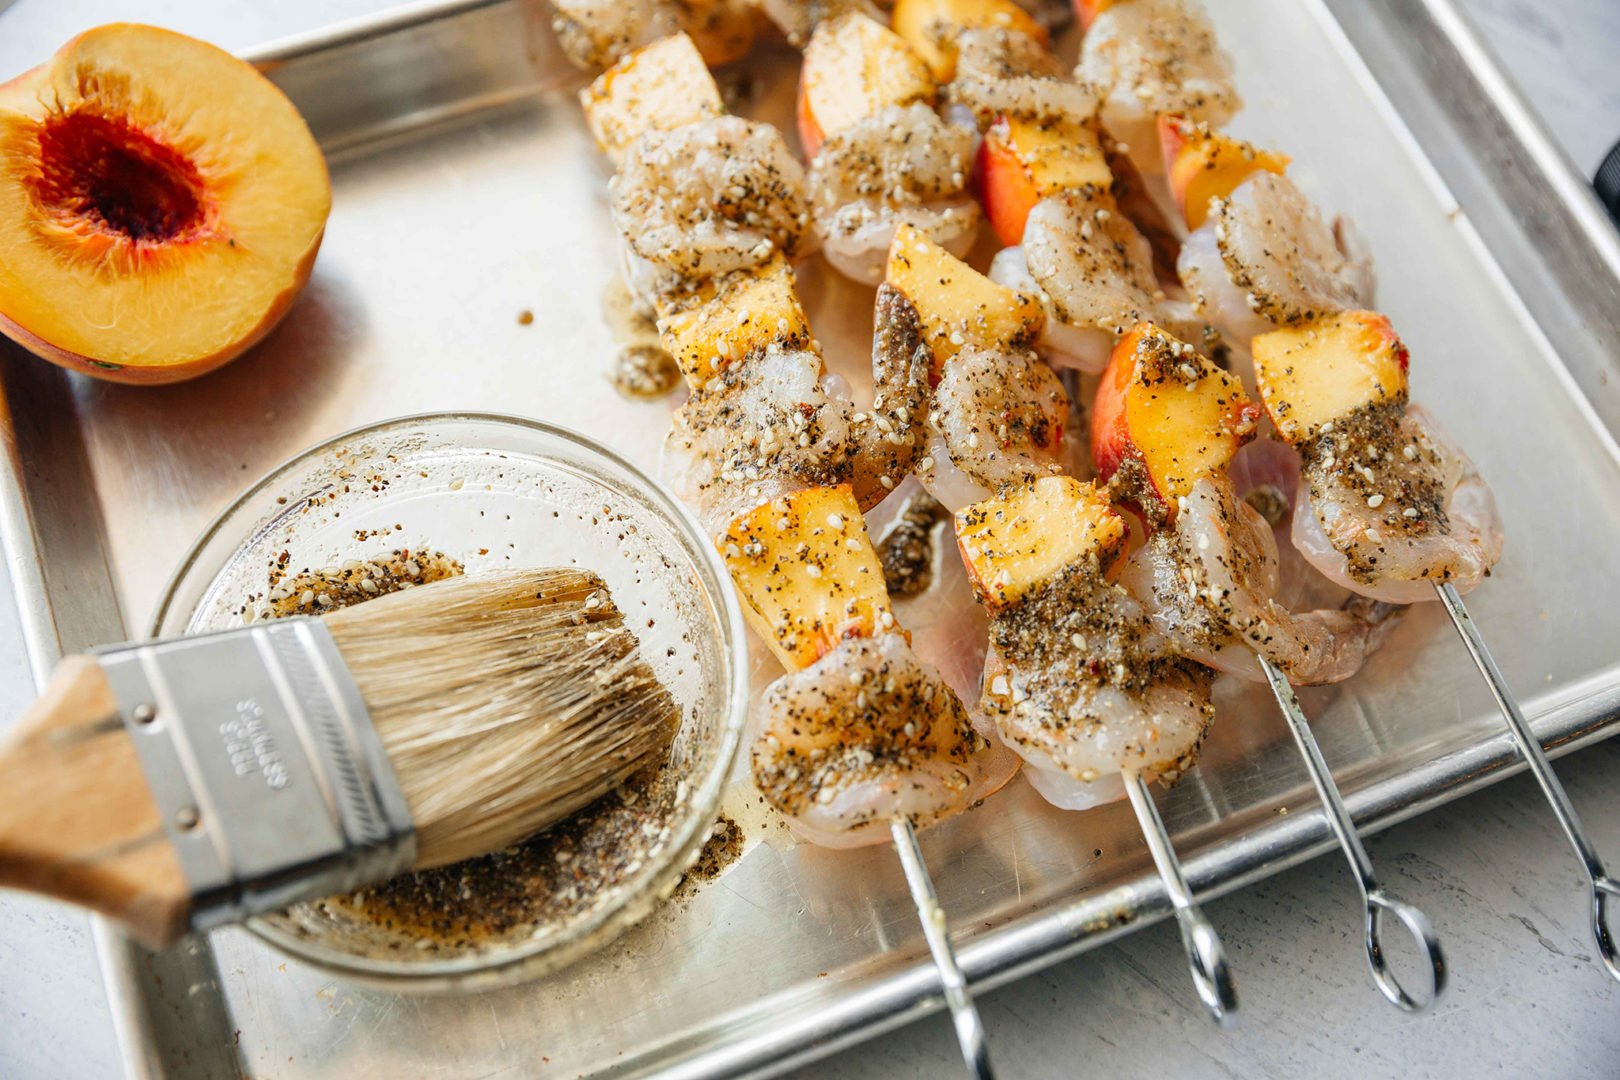 shrimp skewer with chimichurri and peaches